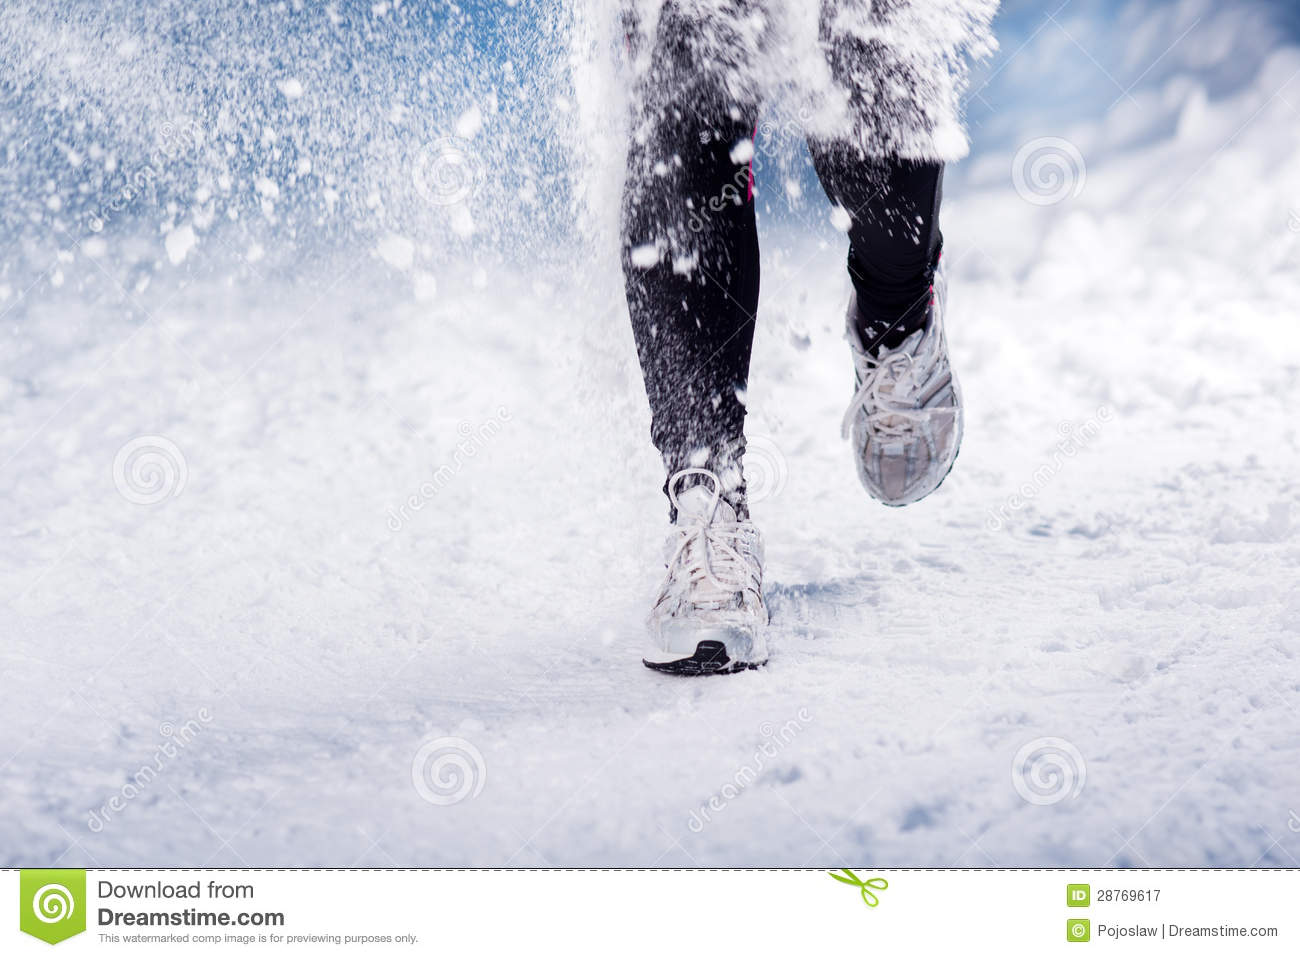 Snow Falling Video Wallpaper Winter Running Woman Royalty Free Stock Photography